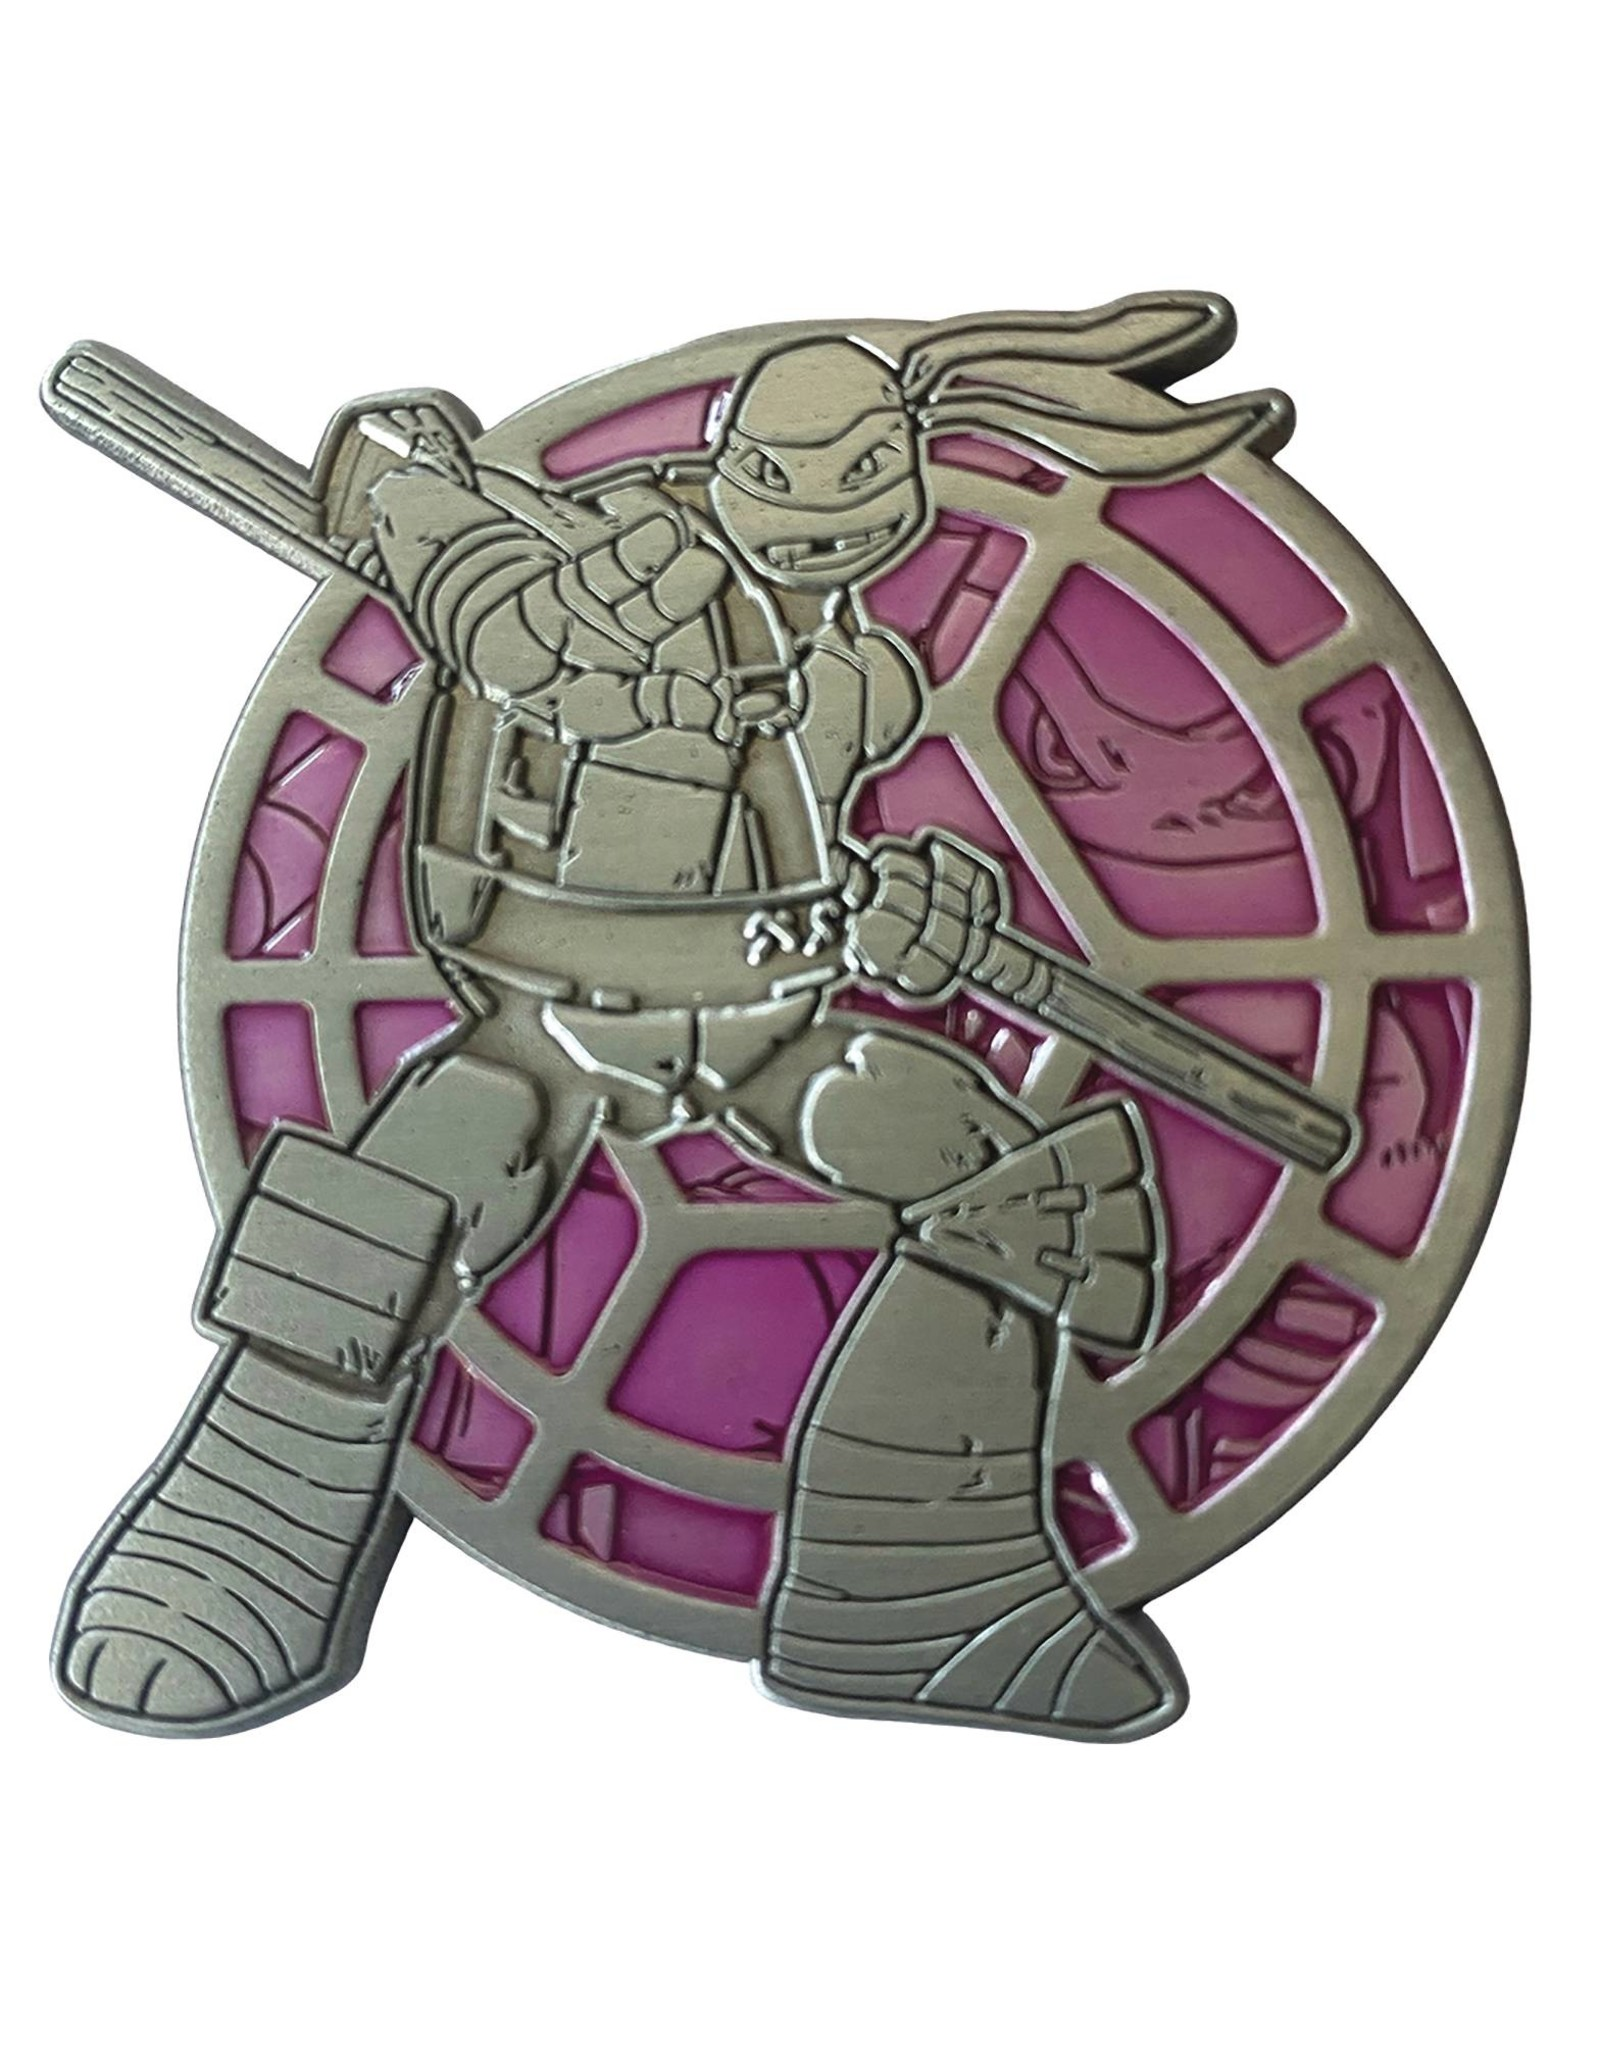 TMNT DONATELLO PORTRAIT SERIES PIN